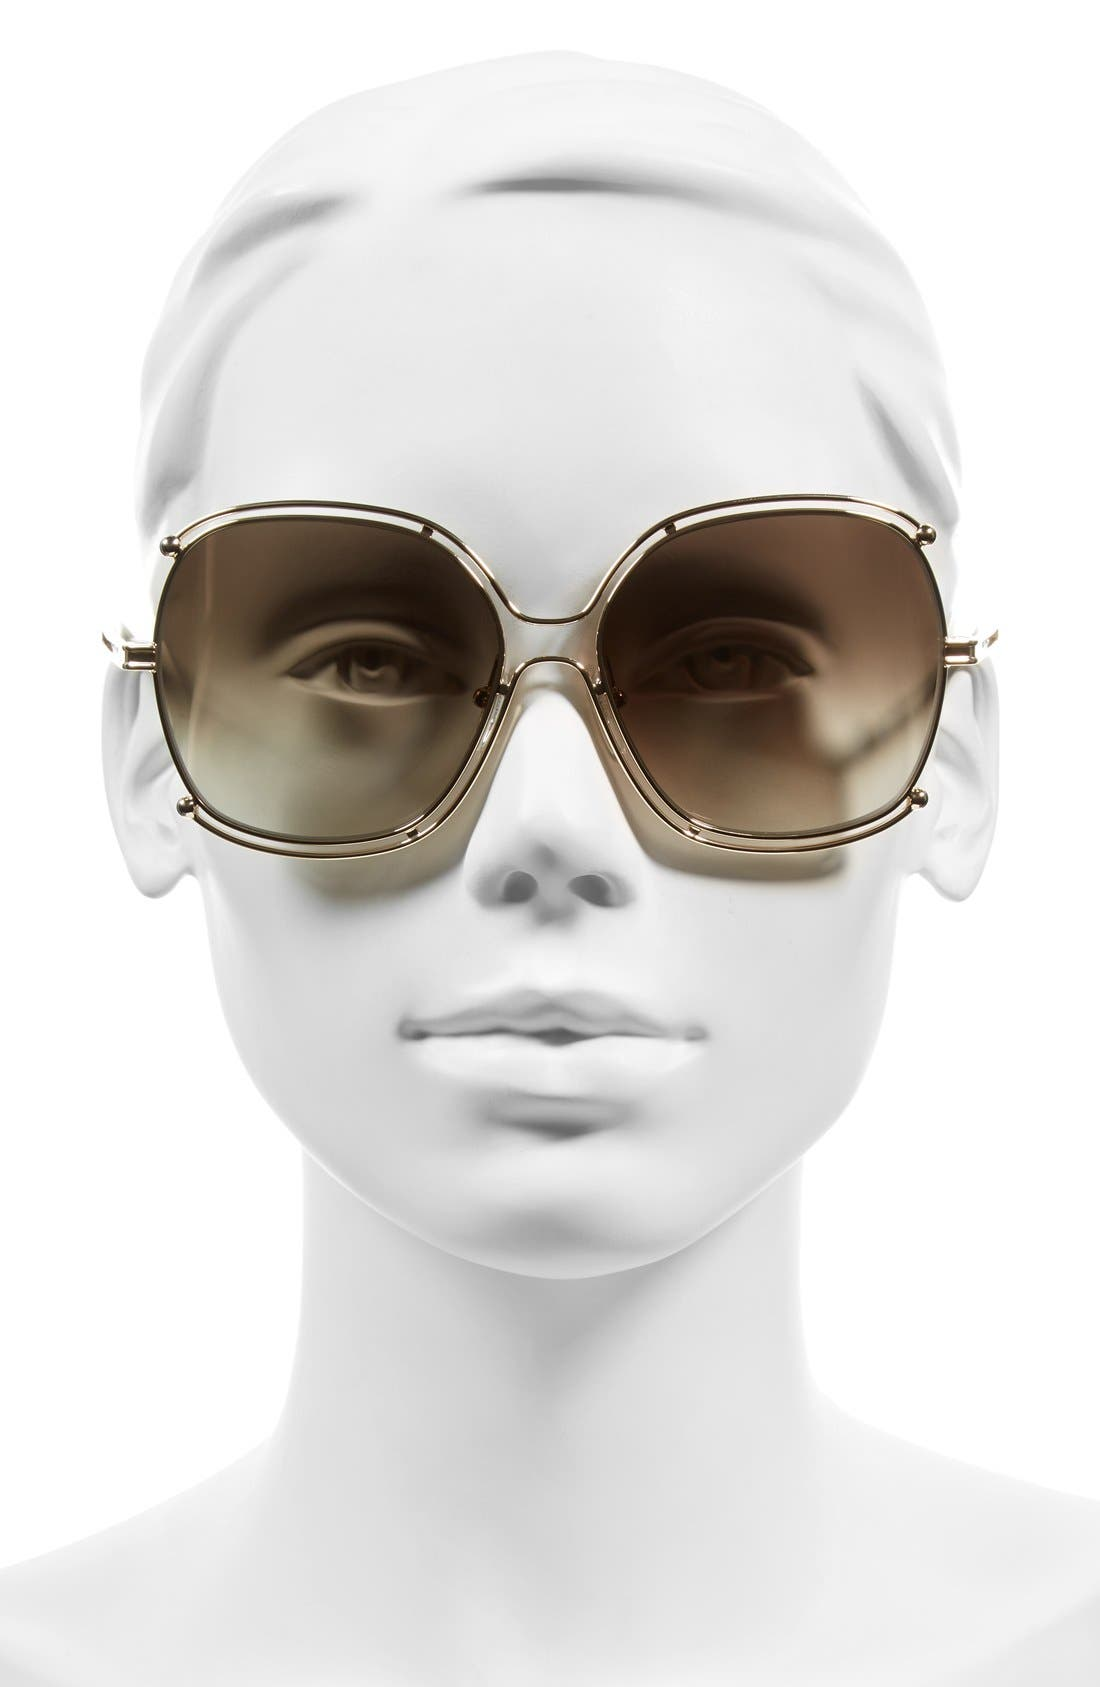 Isidora 59mm Square Sunglasses,                             Alternate thumbnail 2, color,                             Gold/ Khaki